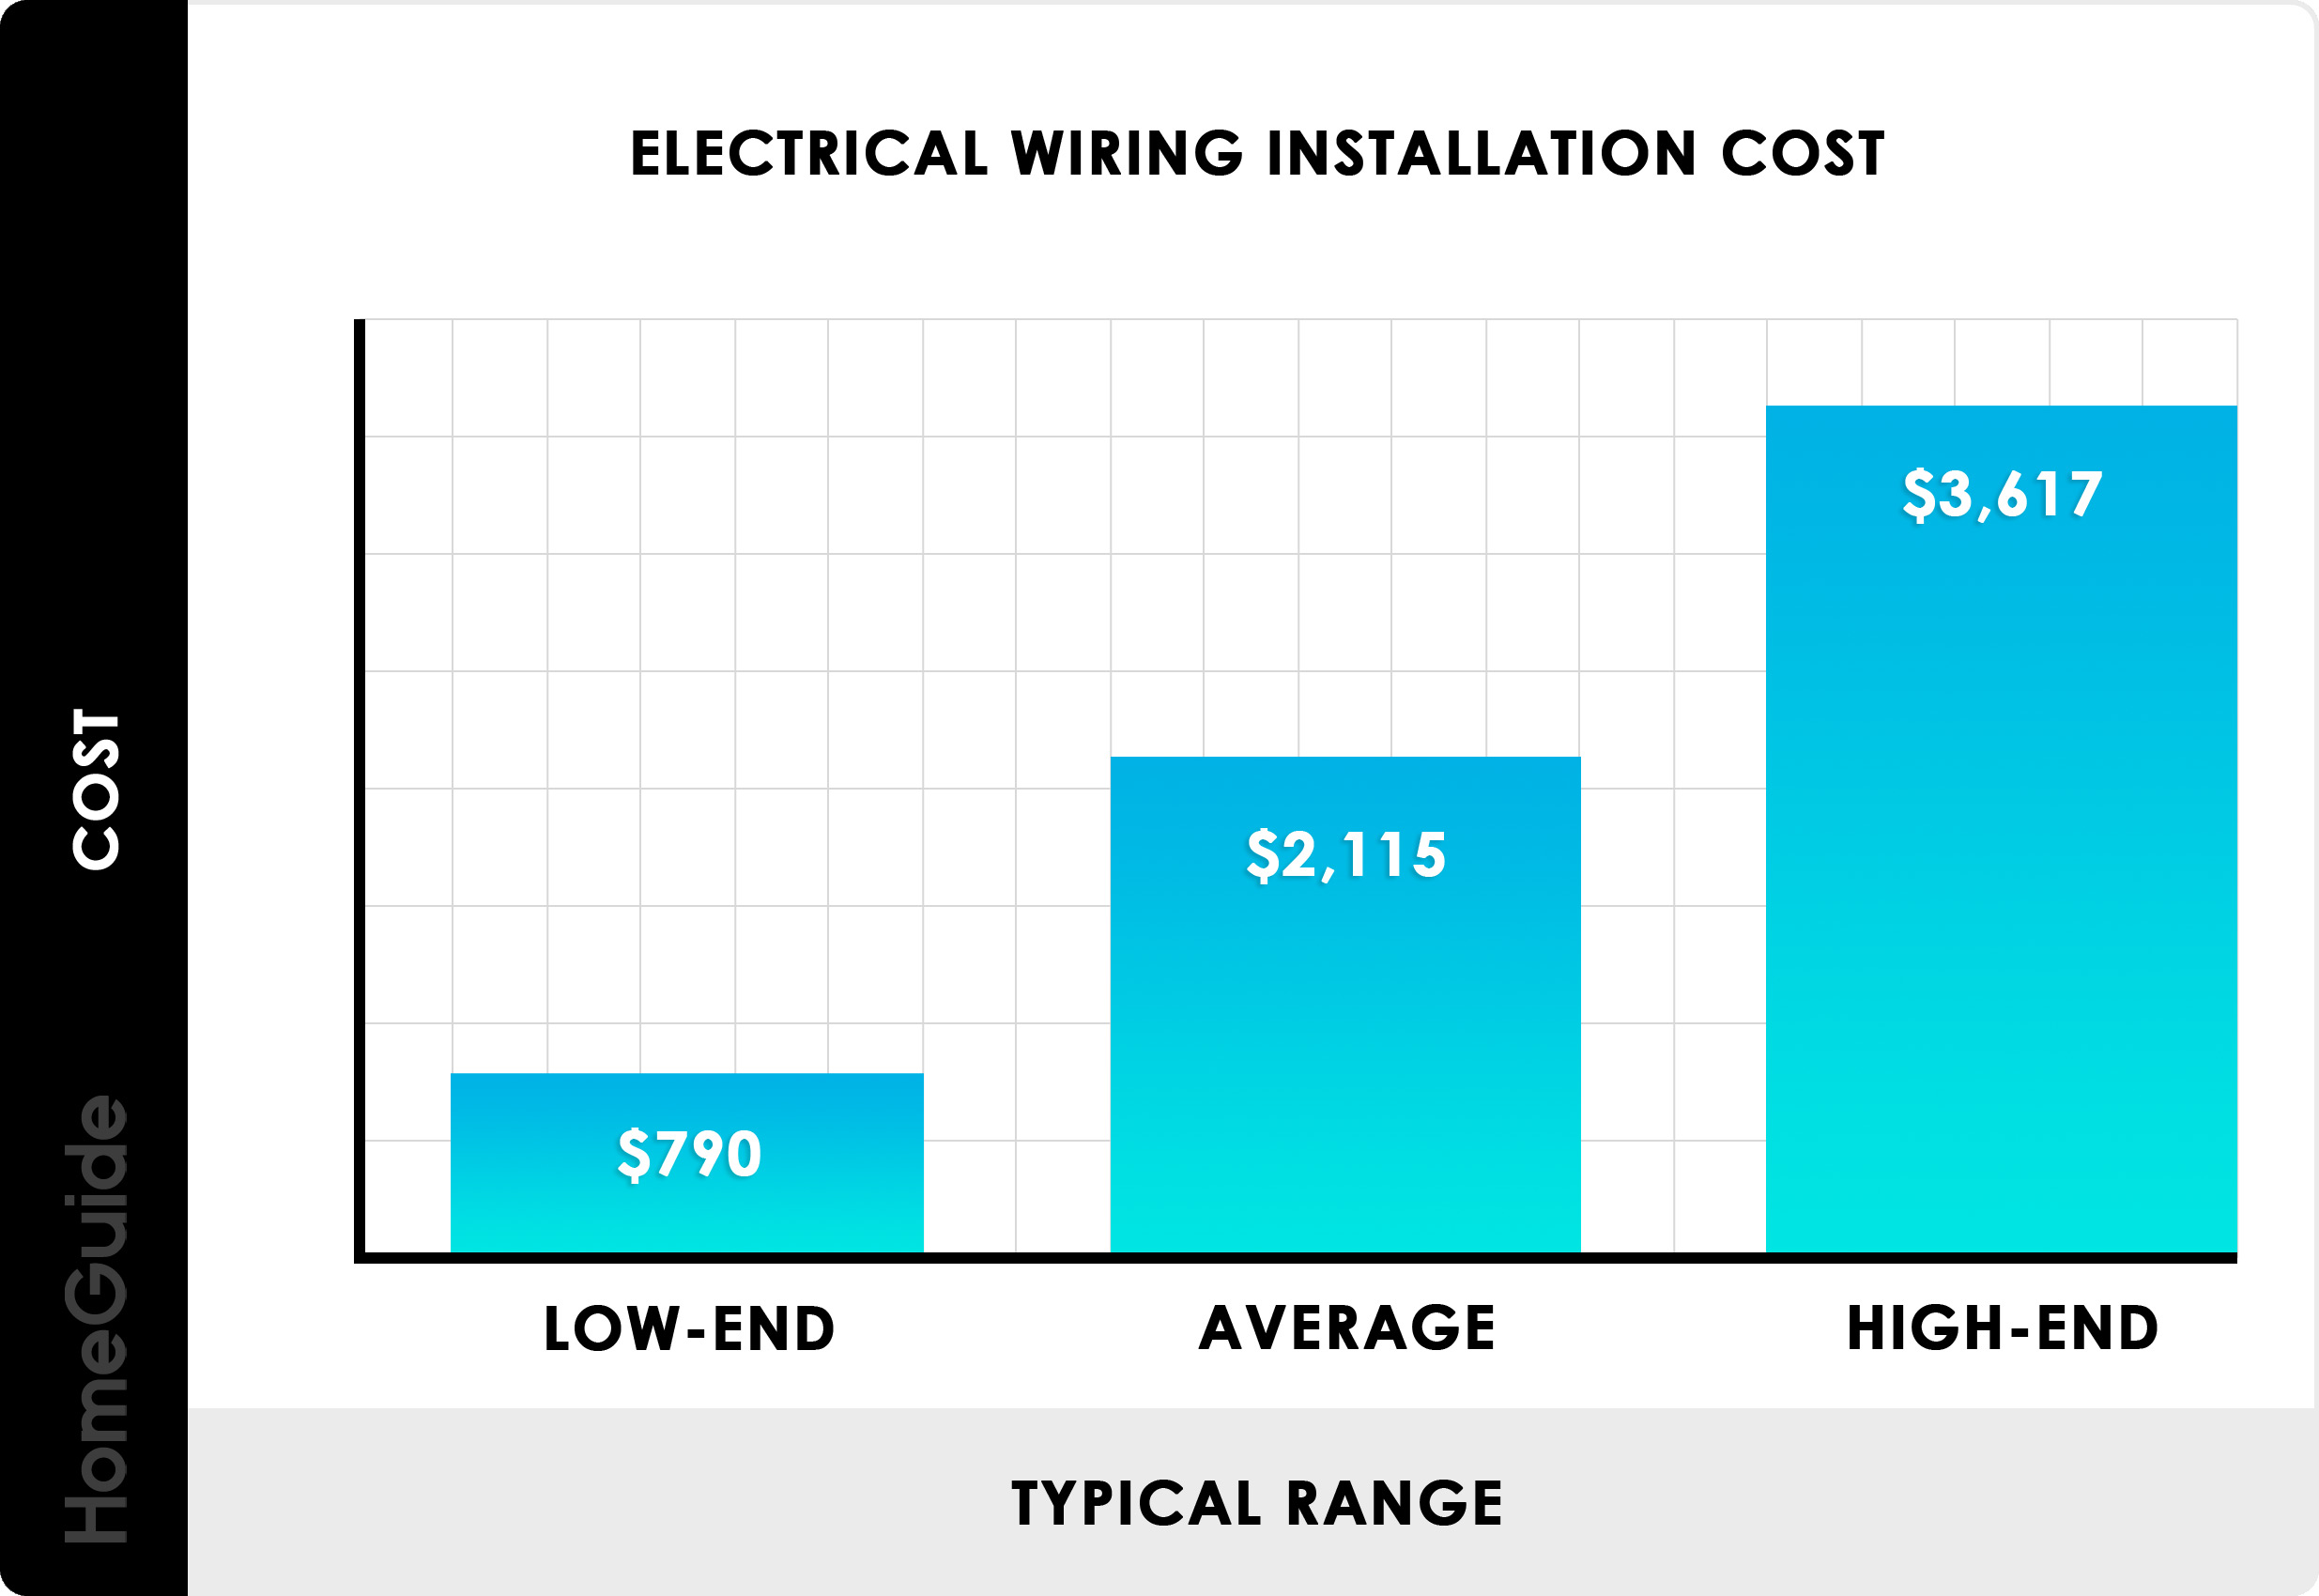 How Much Does It Cost to Wire a House?